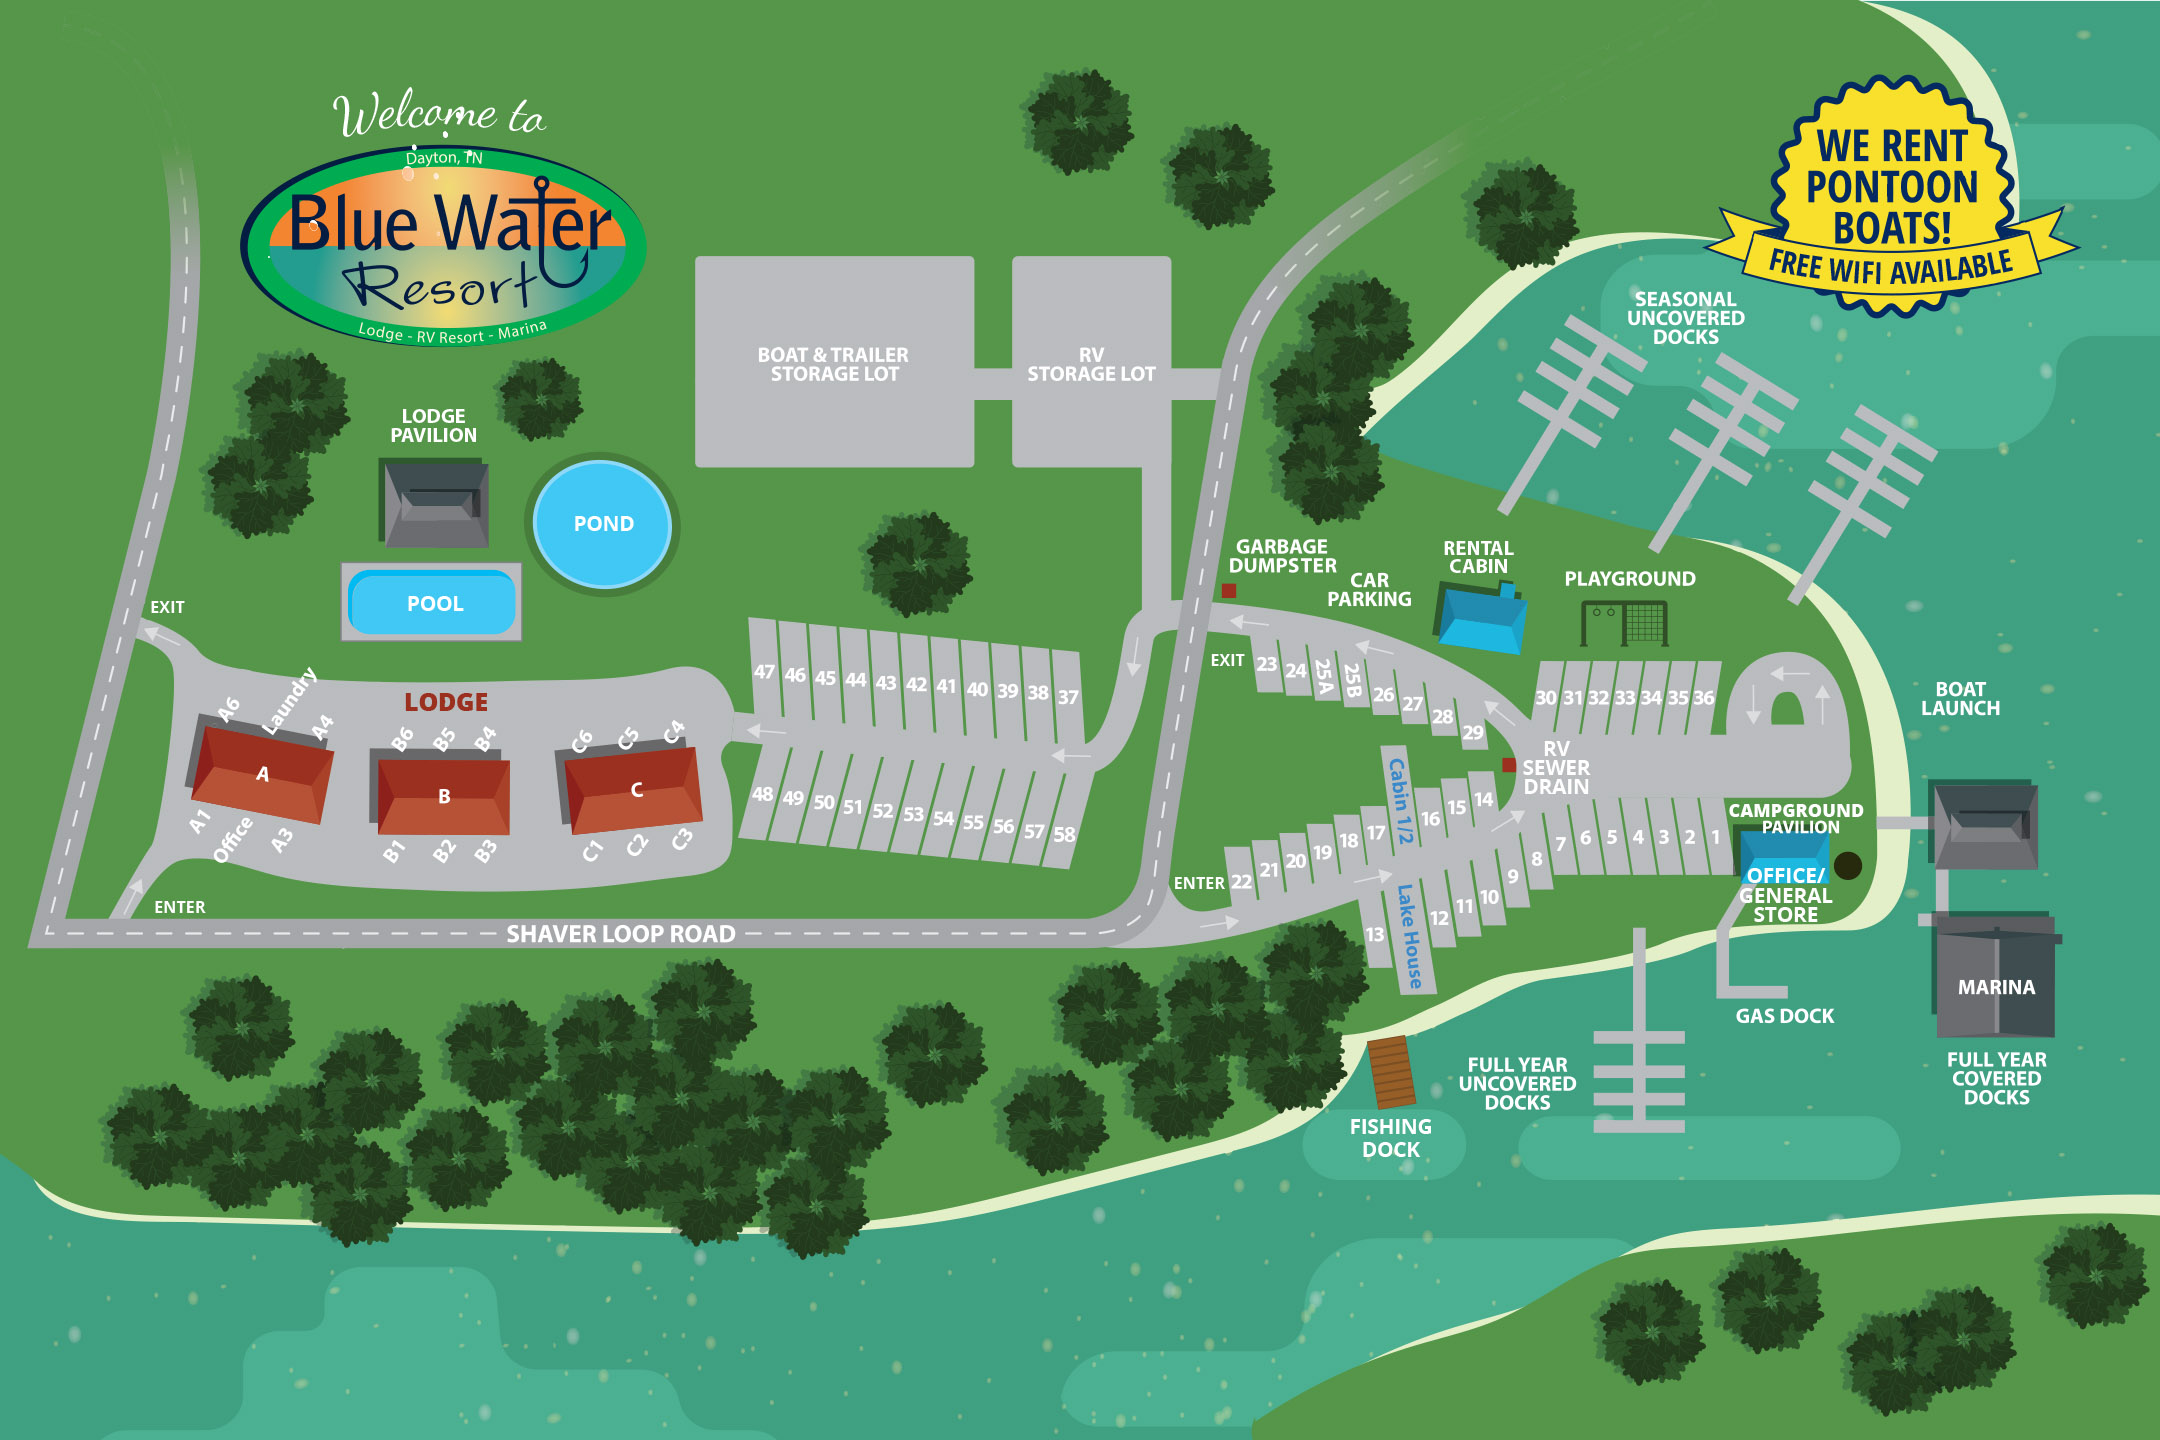 Blue Water Lodge RV Resort Property Map Dayton, TN